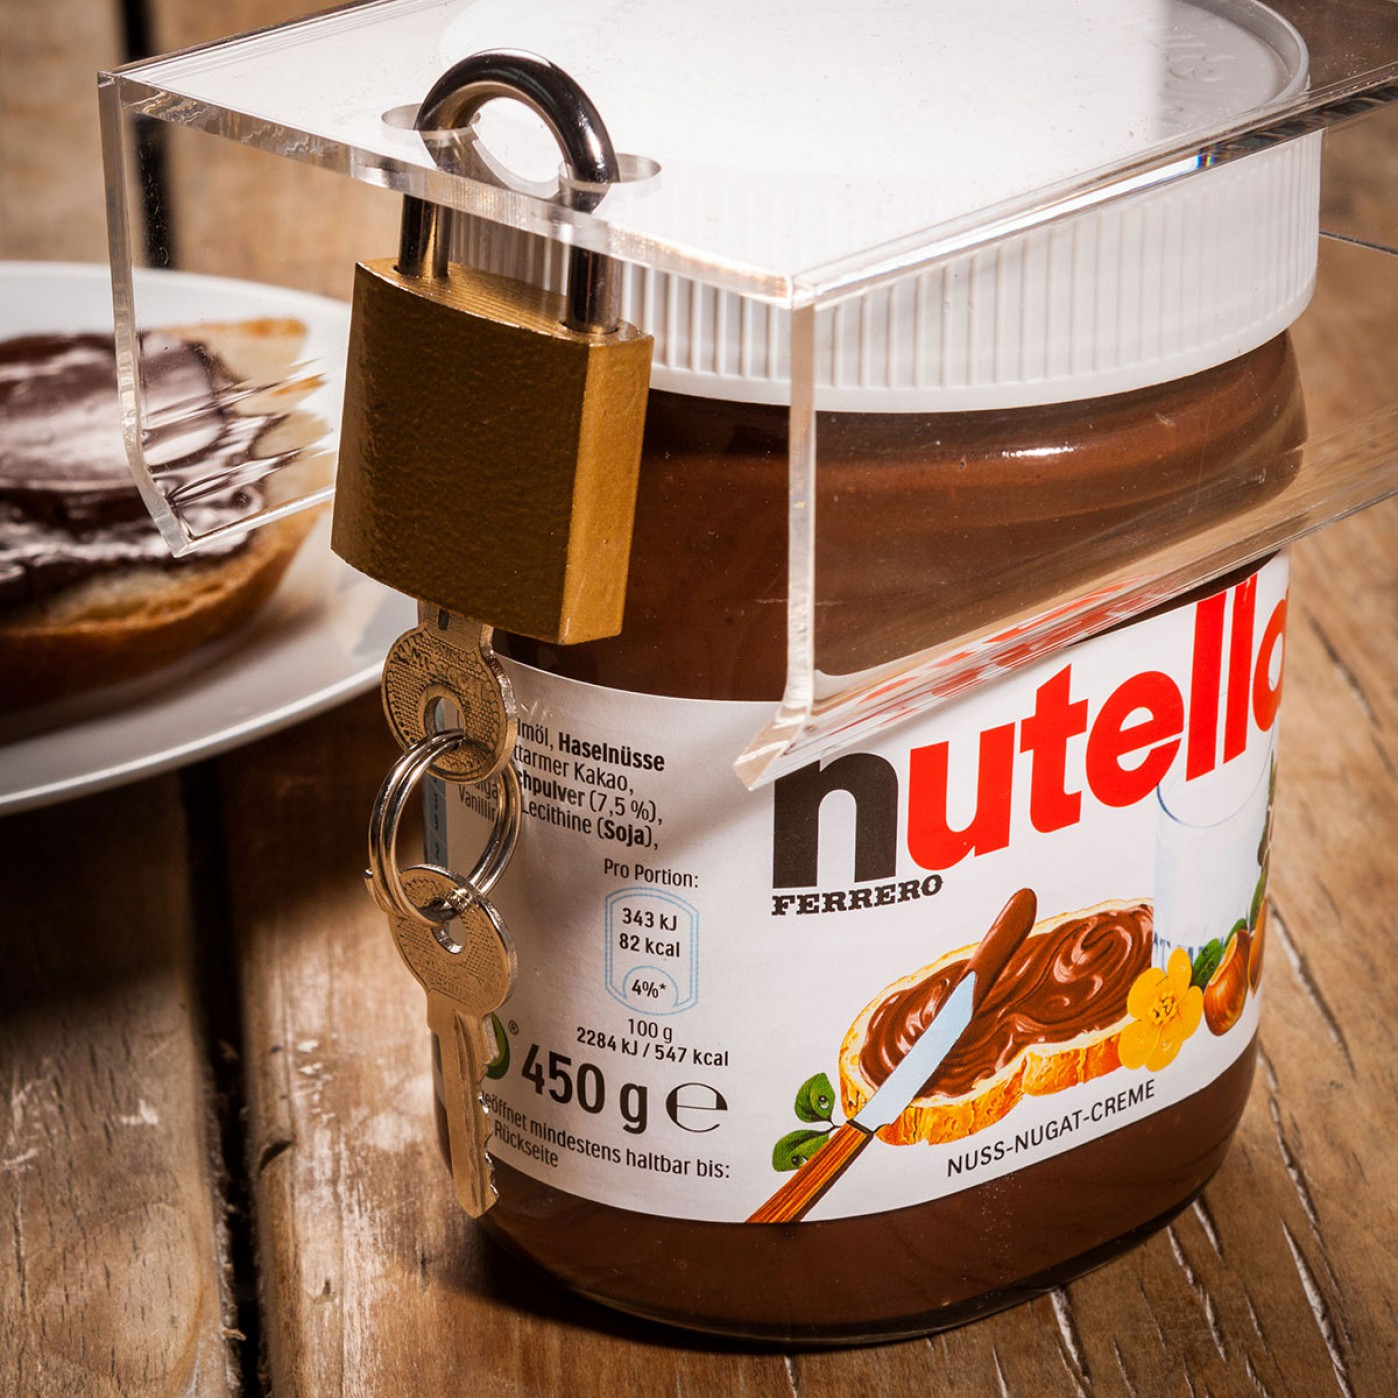 antivol-notella-pot-nutella-glass-lock-2